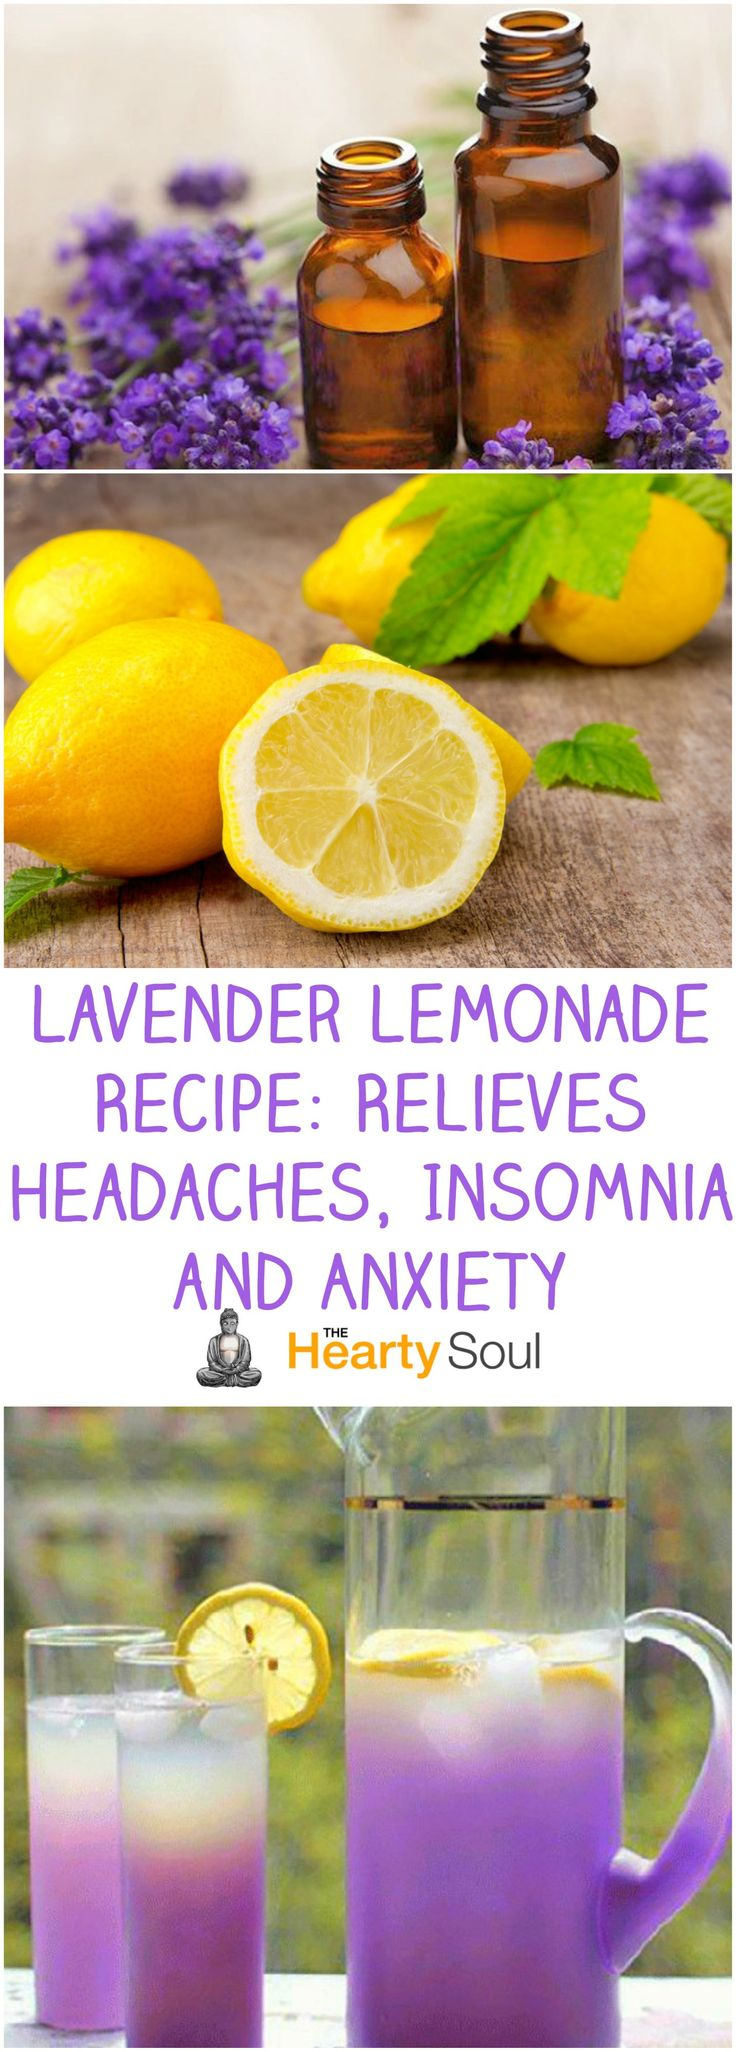 Lavender Lemonade Recipe: Relieves Headaches, Insomnia and Anxiety